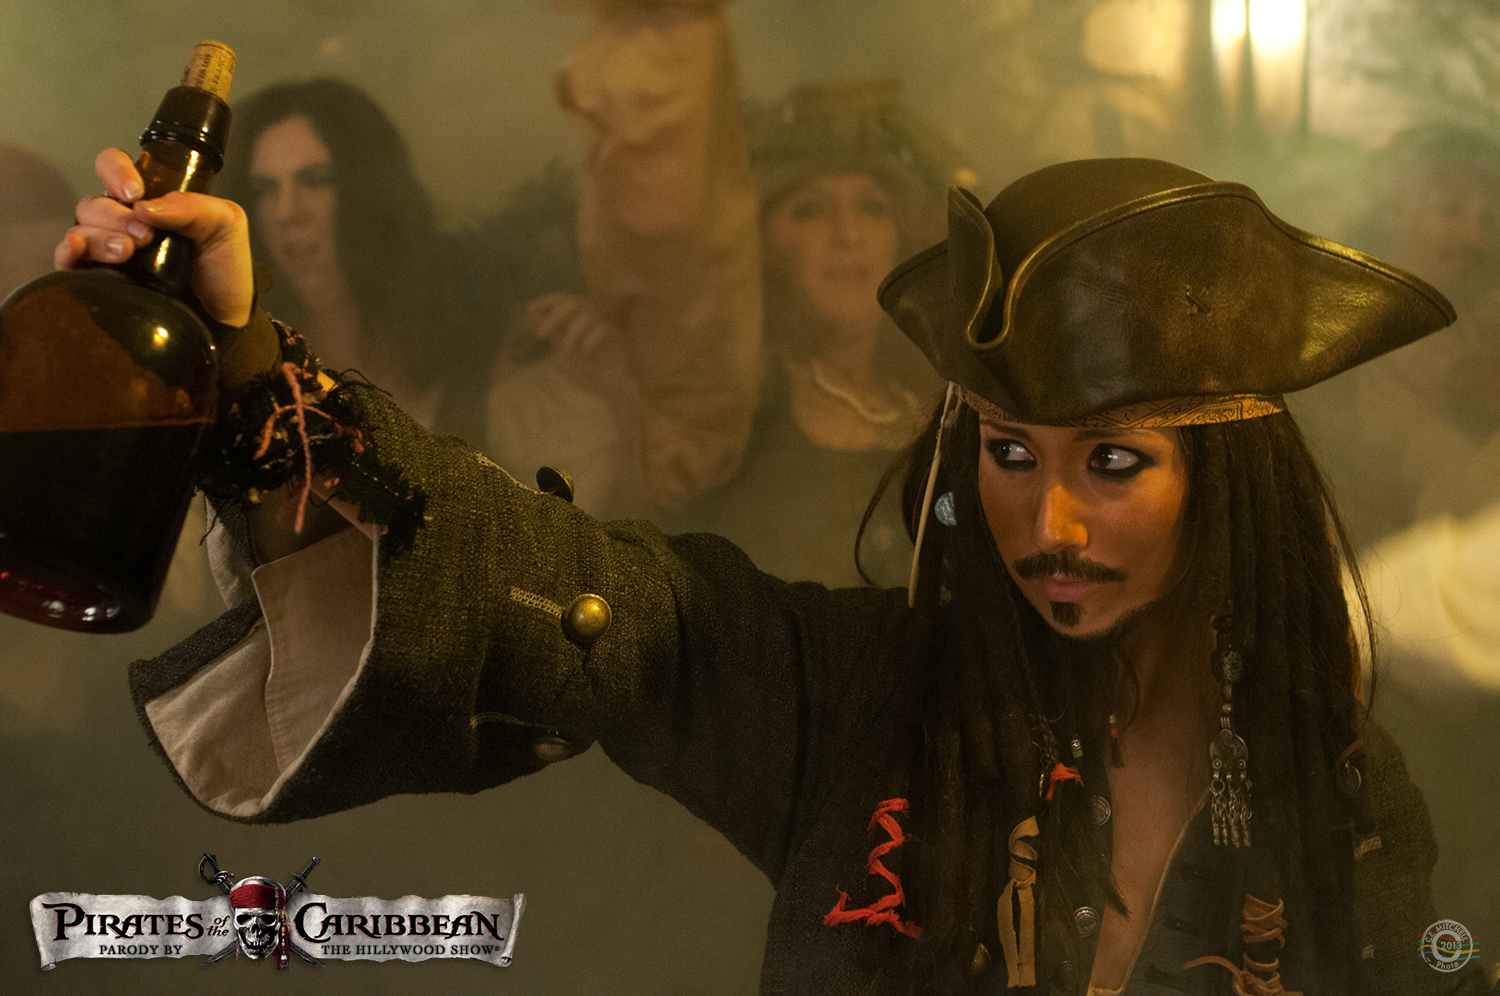 Pirates of the caribean parody porn pictures pron galleries